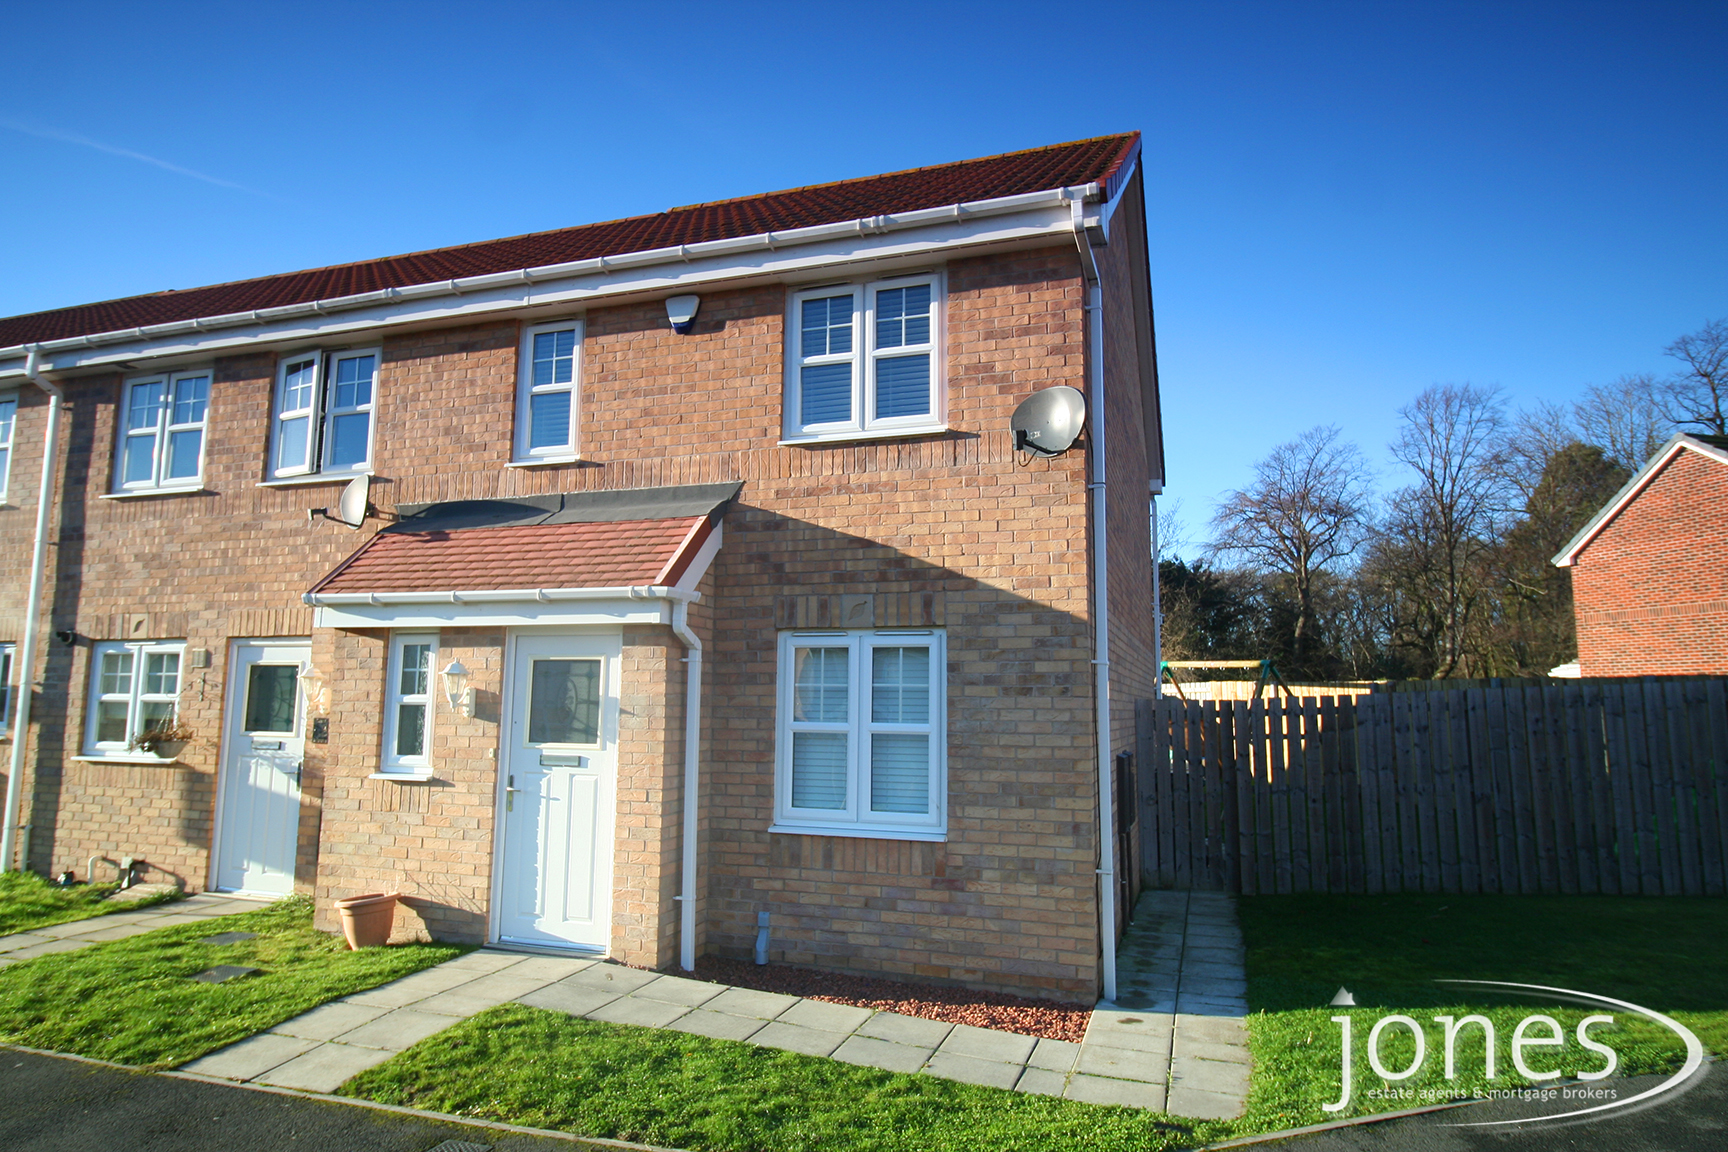 Home for Sale Let - Photo 01 Aristotle Drive, Stockton on Tees,  TS19 8GH